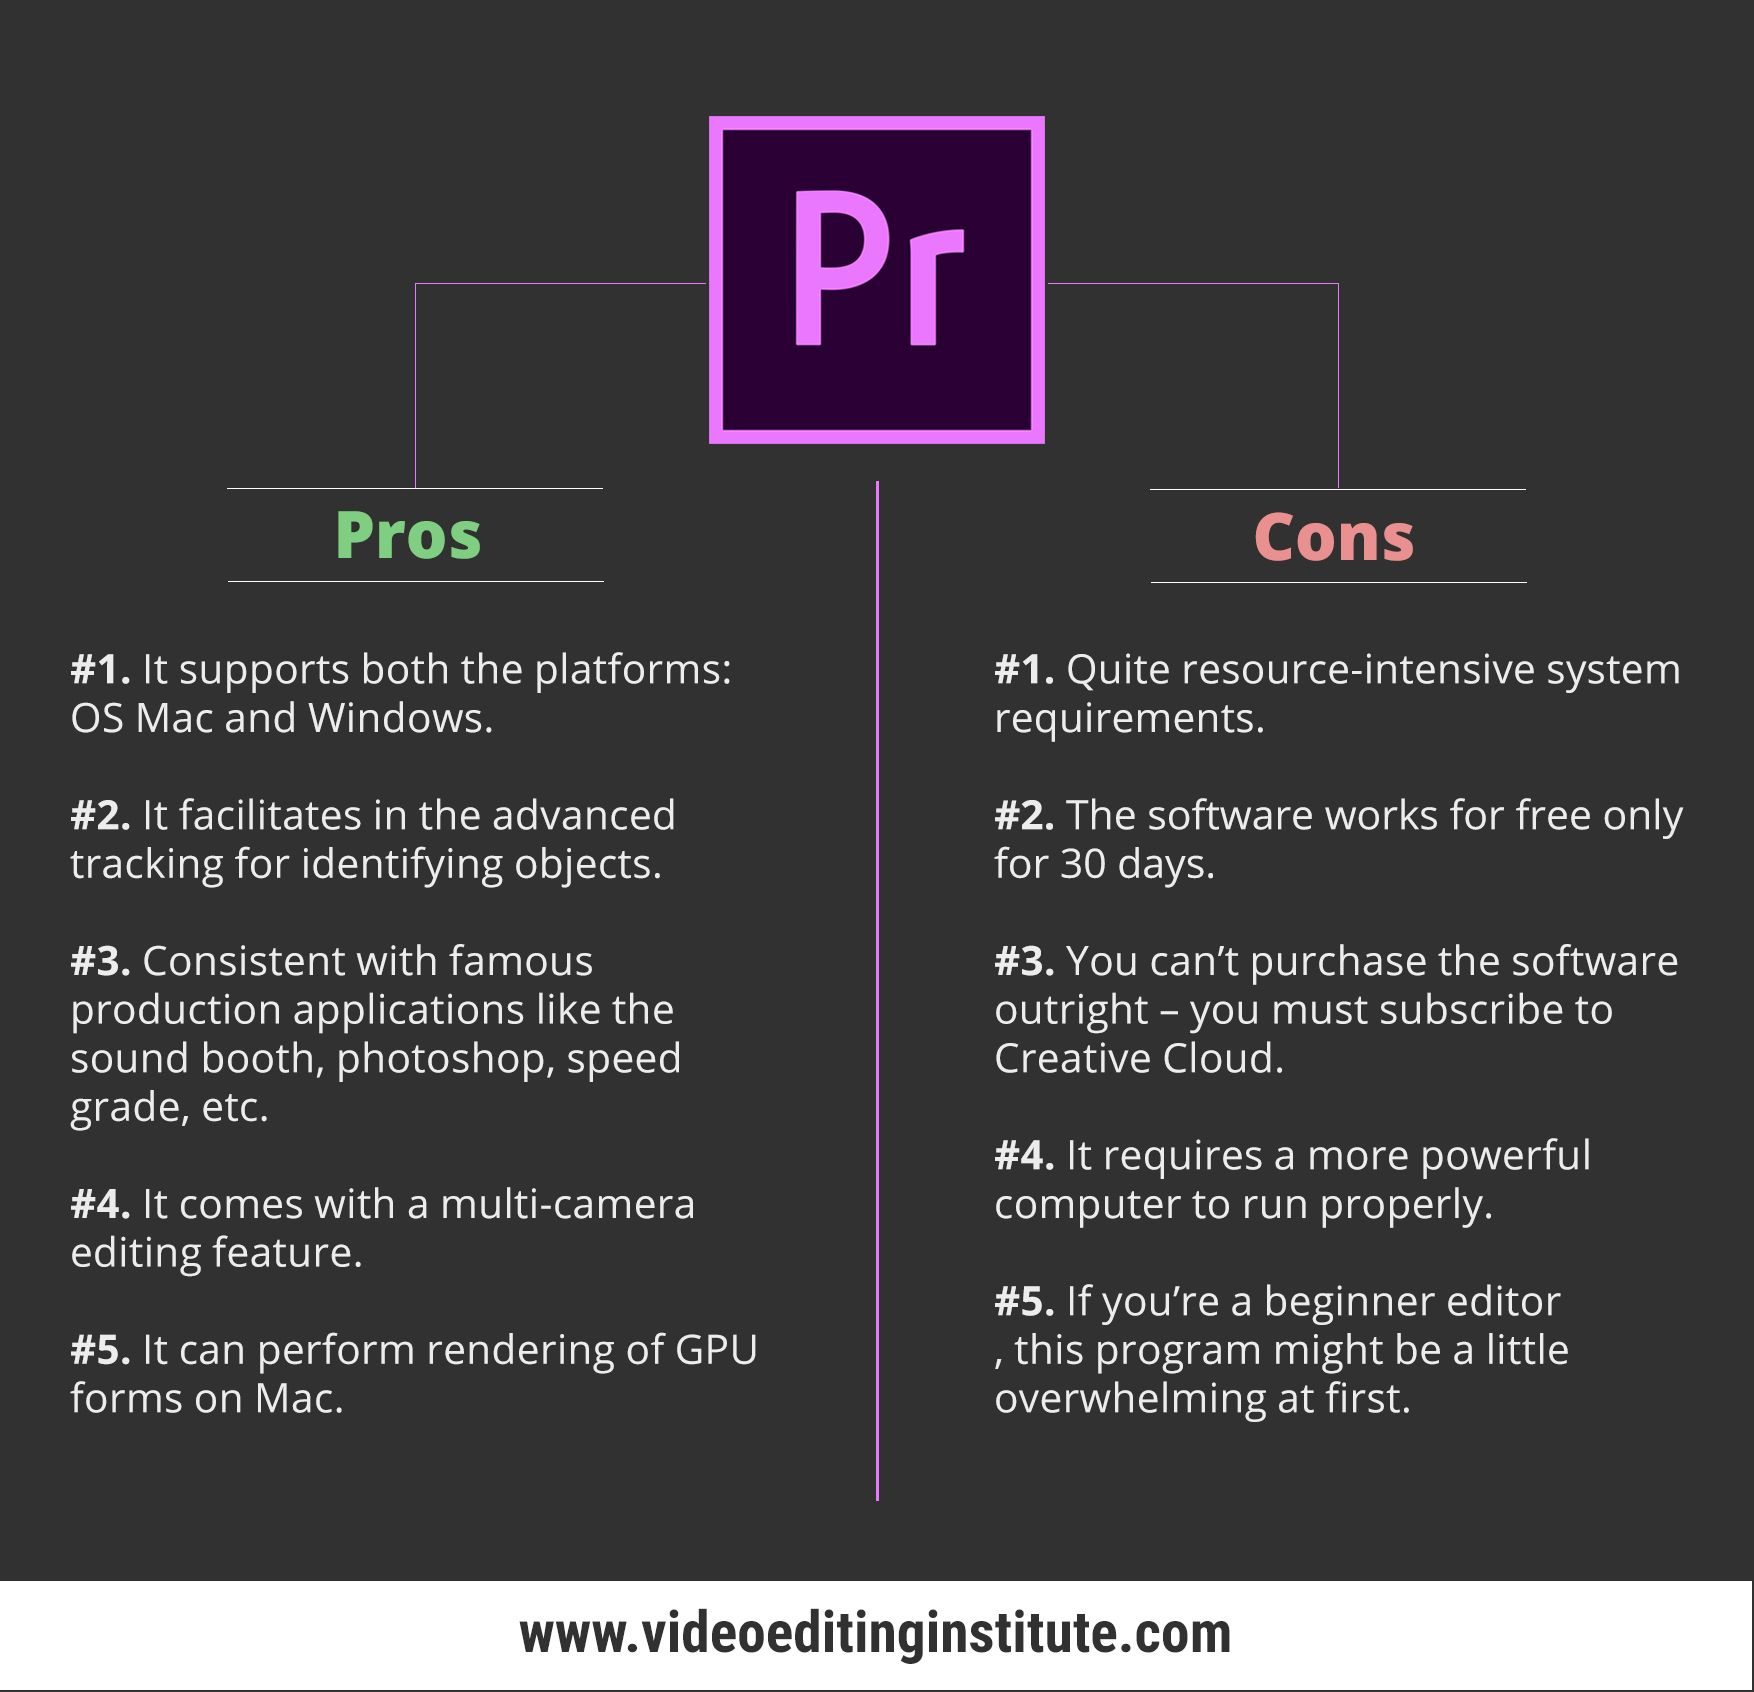 Pros And Cons Of Adobe Premiere Pro Adobe Premiere Pro Premiere Pro Premiere Pro Tutorials